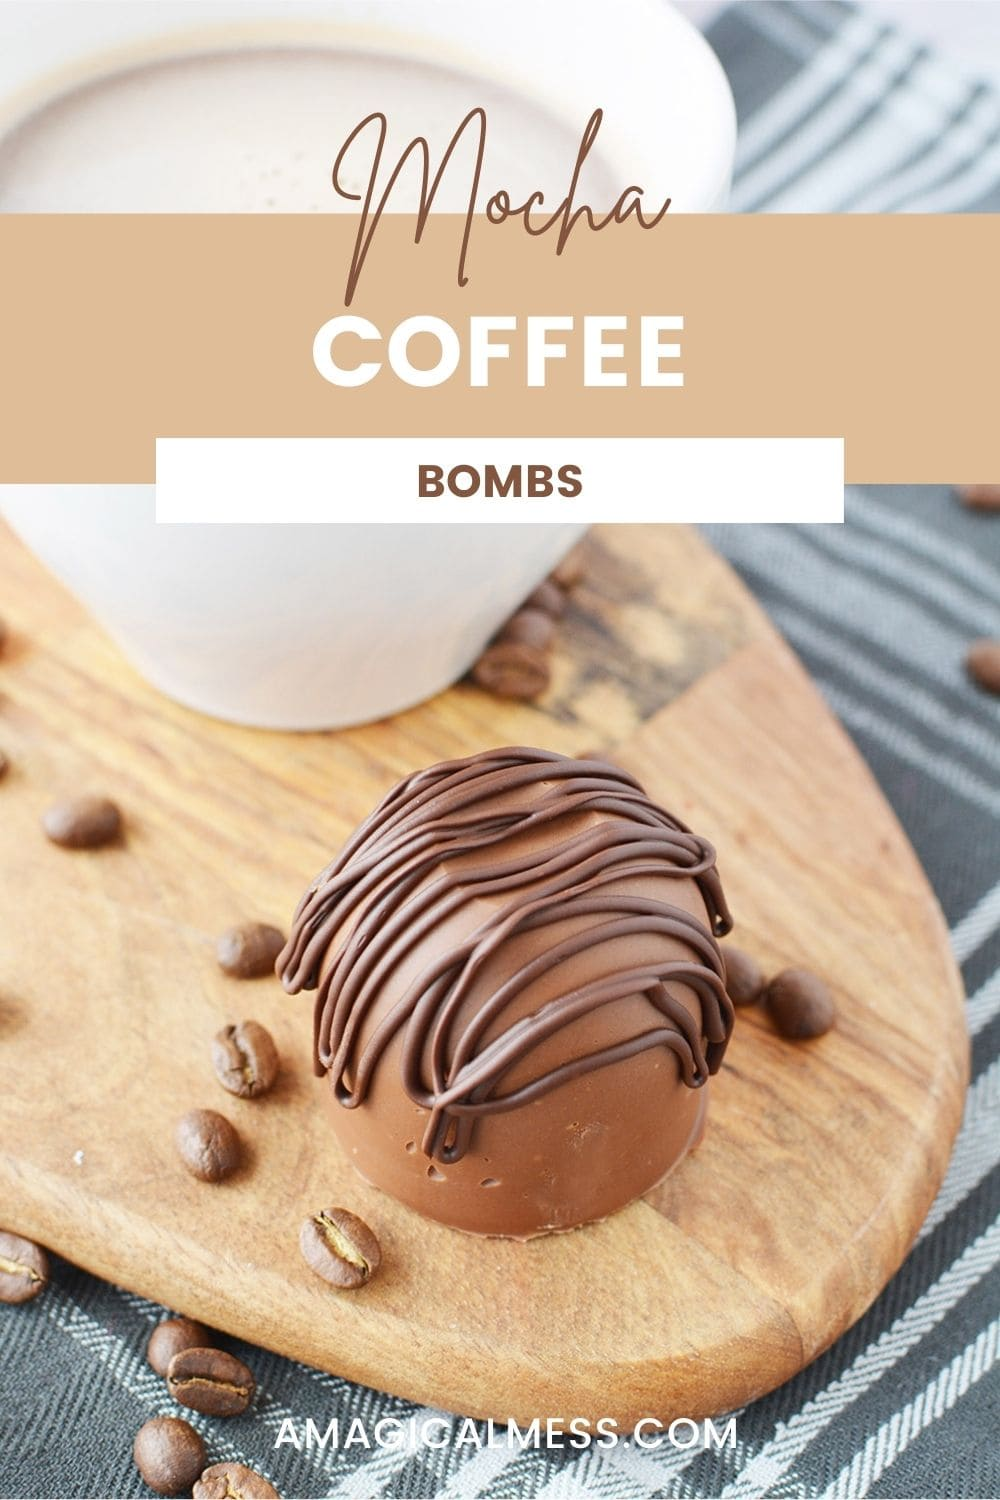 A coffee bomb sitting by coffee beans and a white mug.